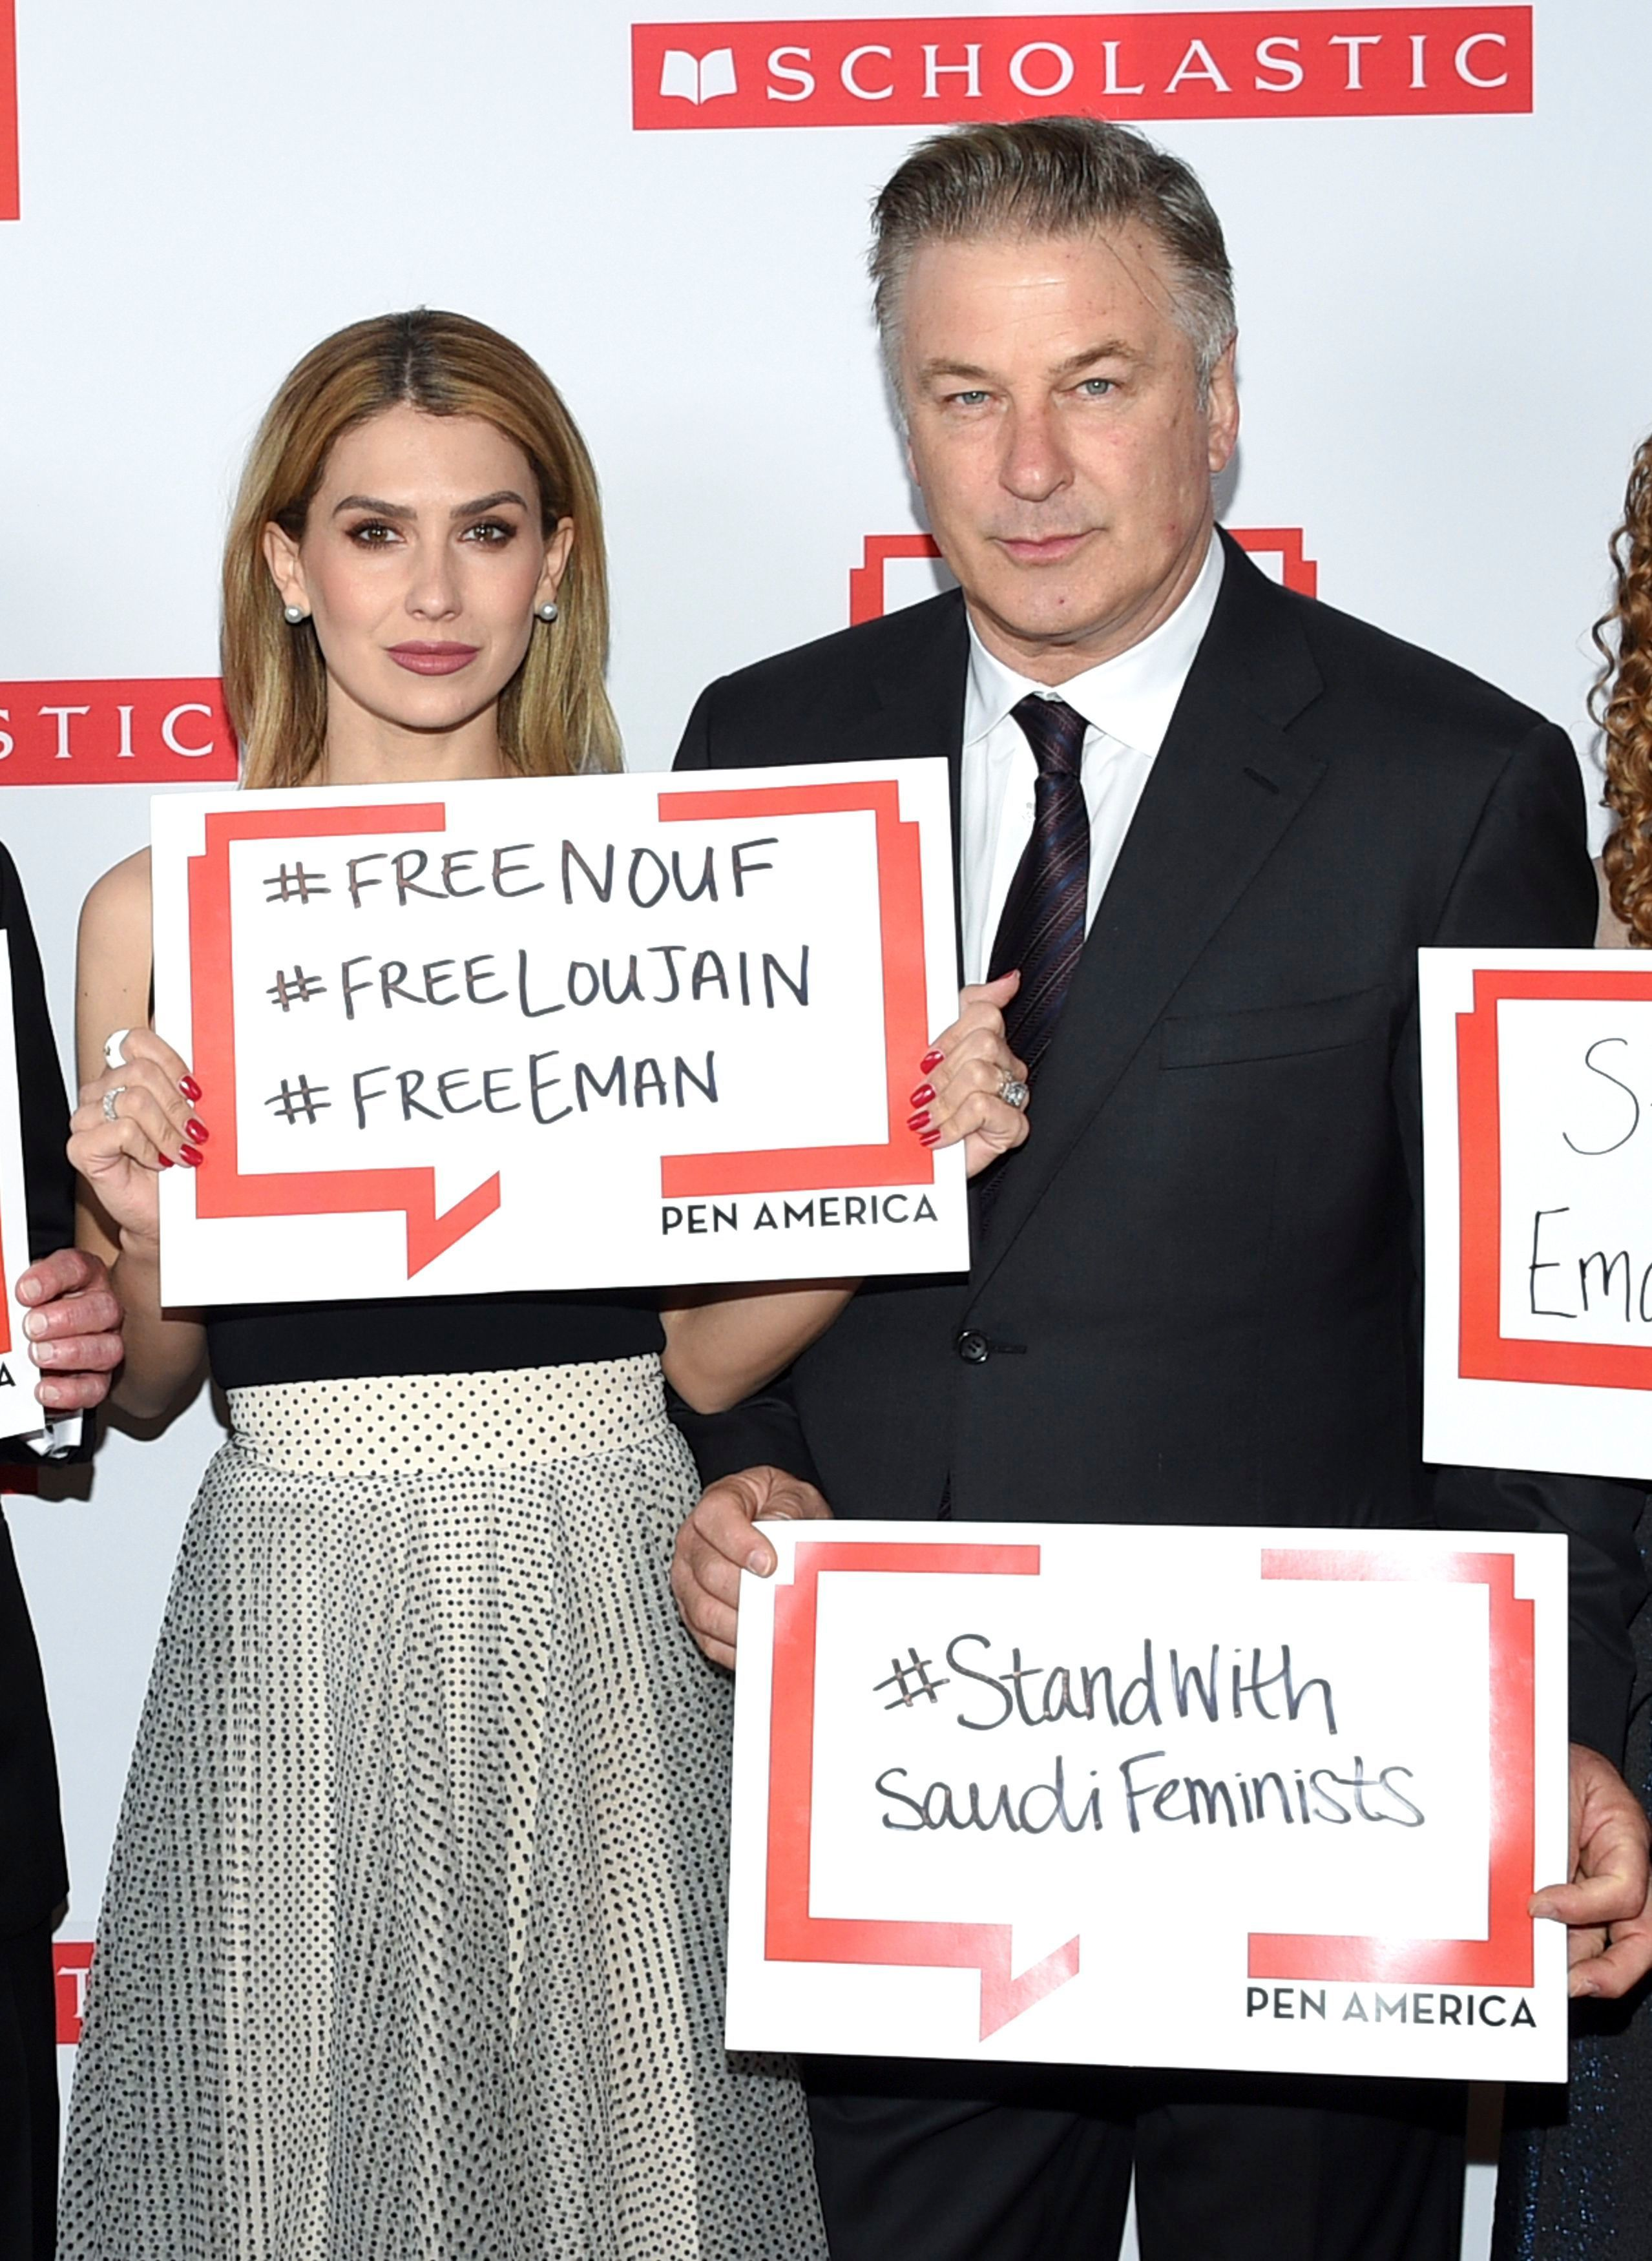 Alec Baldwin and Hilaria Baldwin pose holding signs in support of jailed Saudi women's rights activists Nouf Abdulaziz, Loujain Al Hathloul and Eman Al Nafjan at the 2019 PEN America Literary Gala at the American Museum of Natural History in New York City on May 21, 2019.